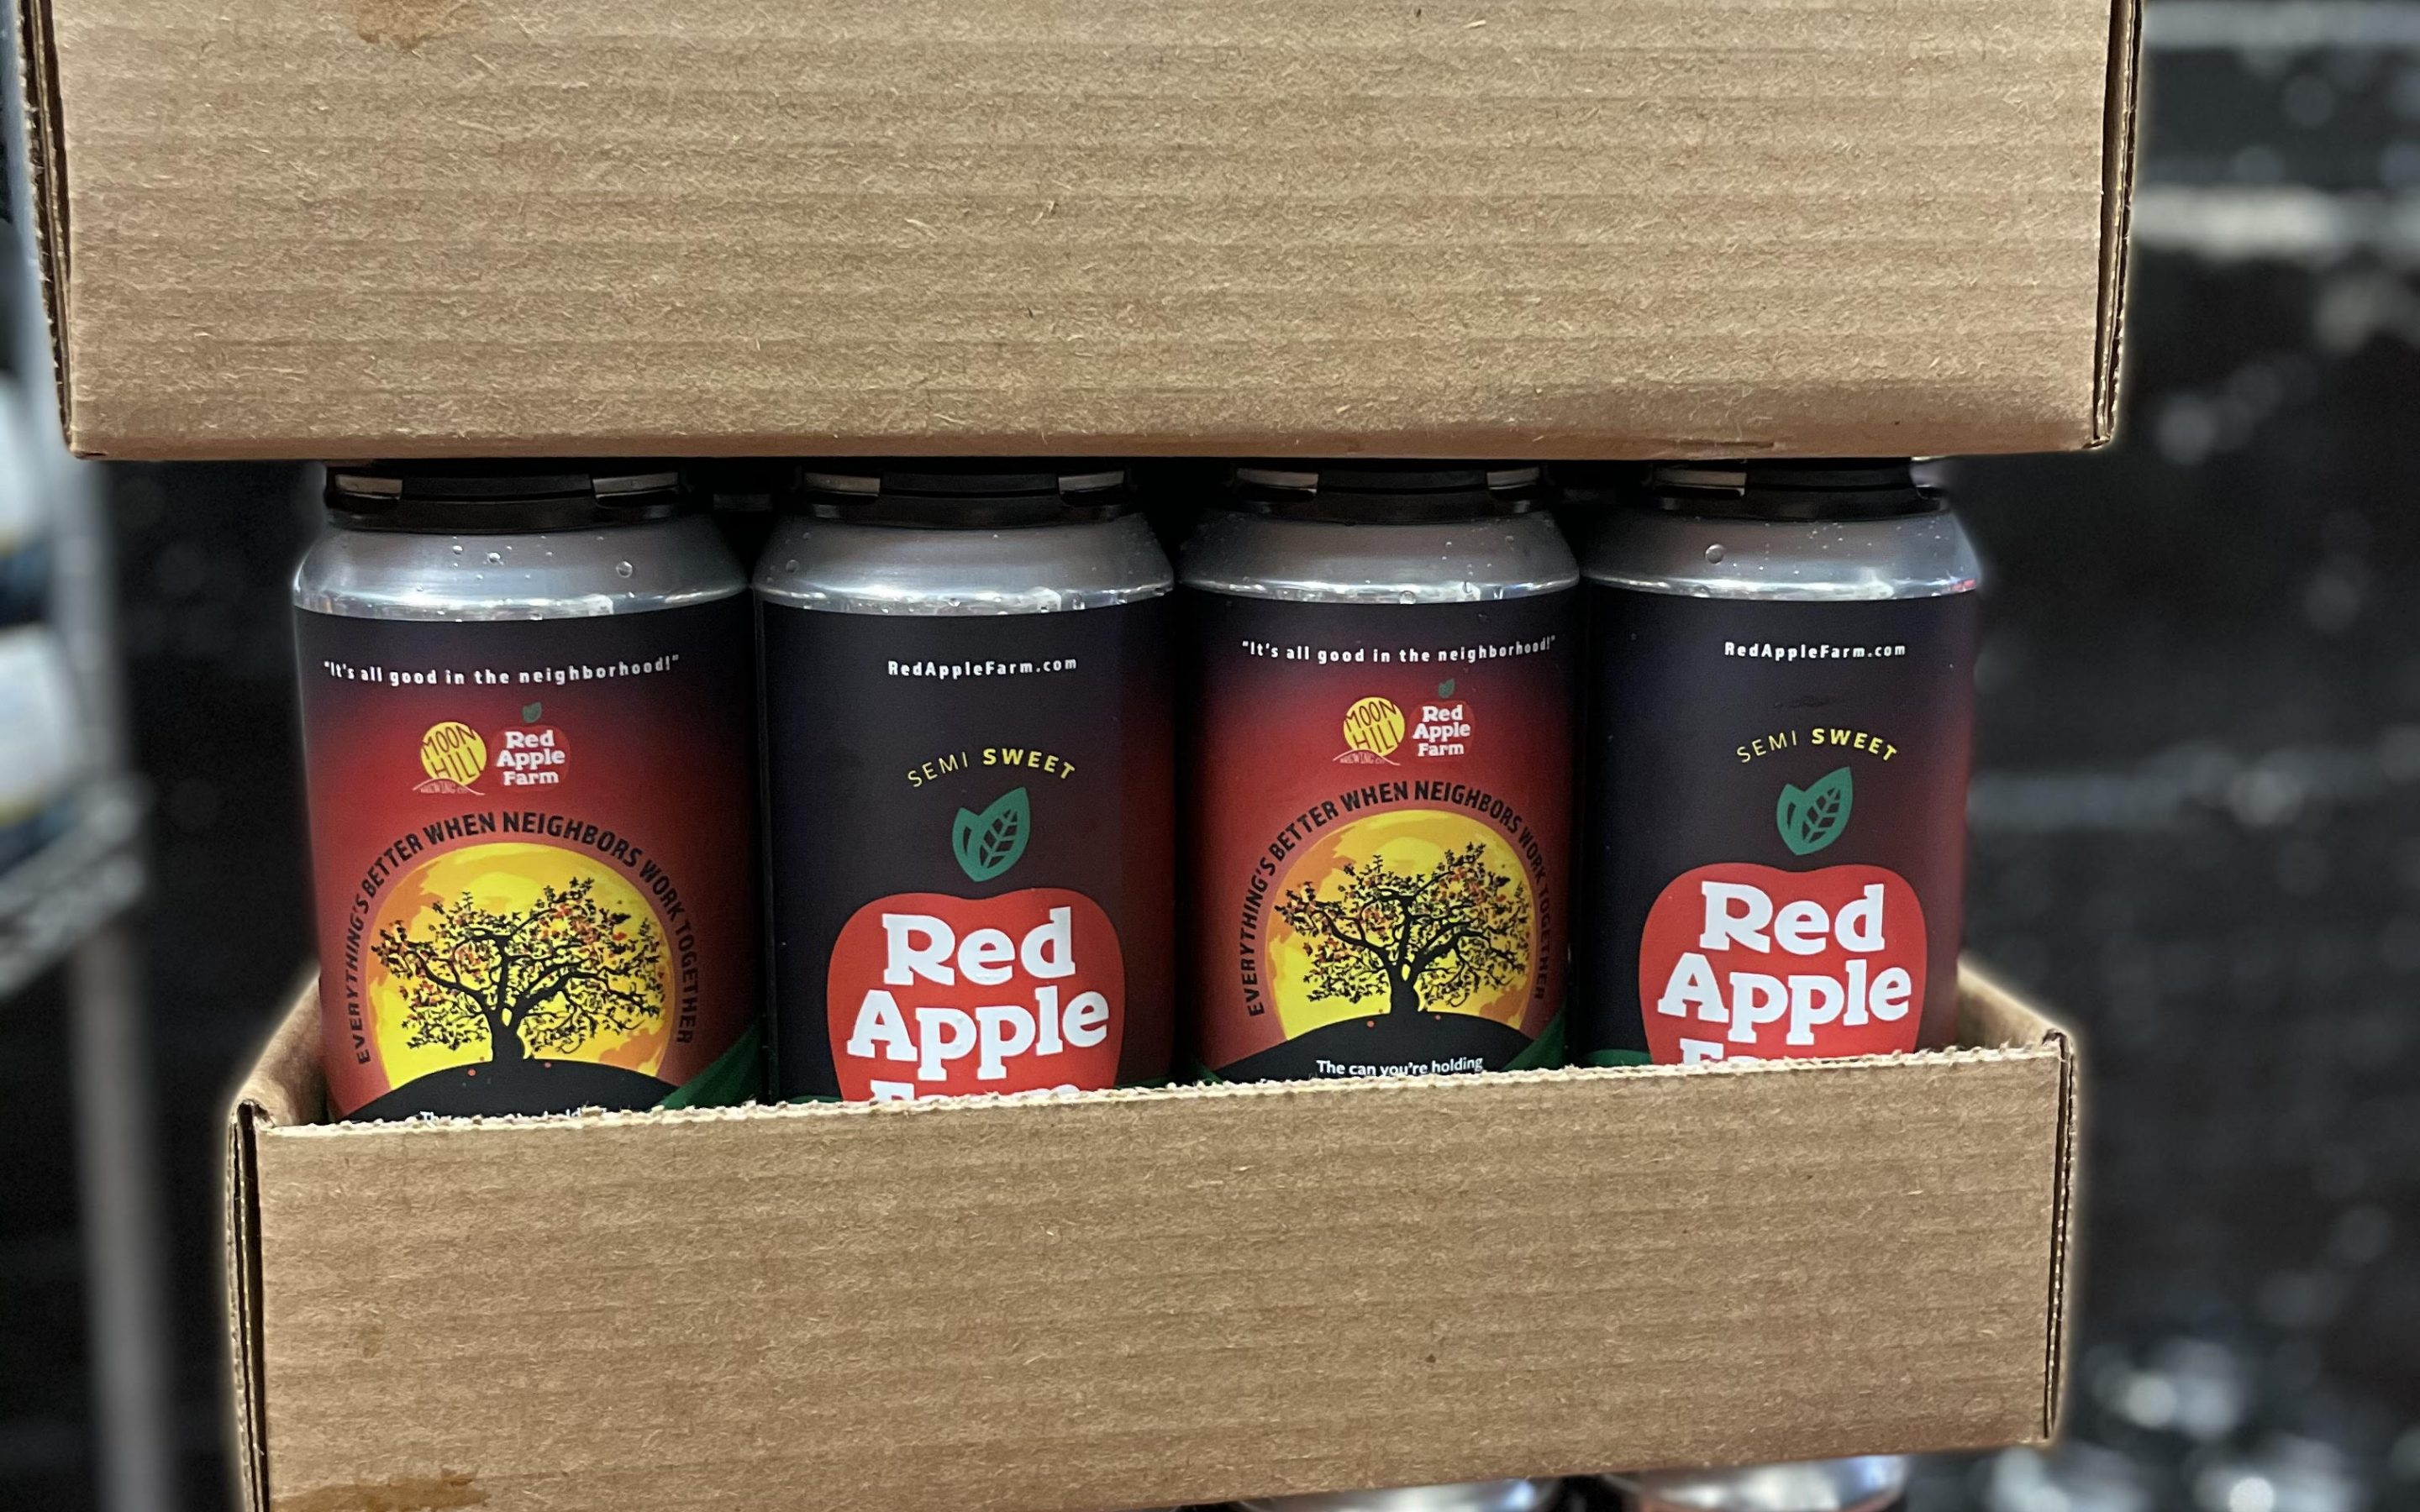 Red Apple Farm Semi-Sweet Hard Cider is in Cans